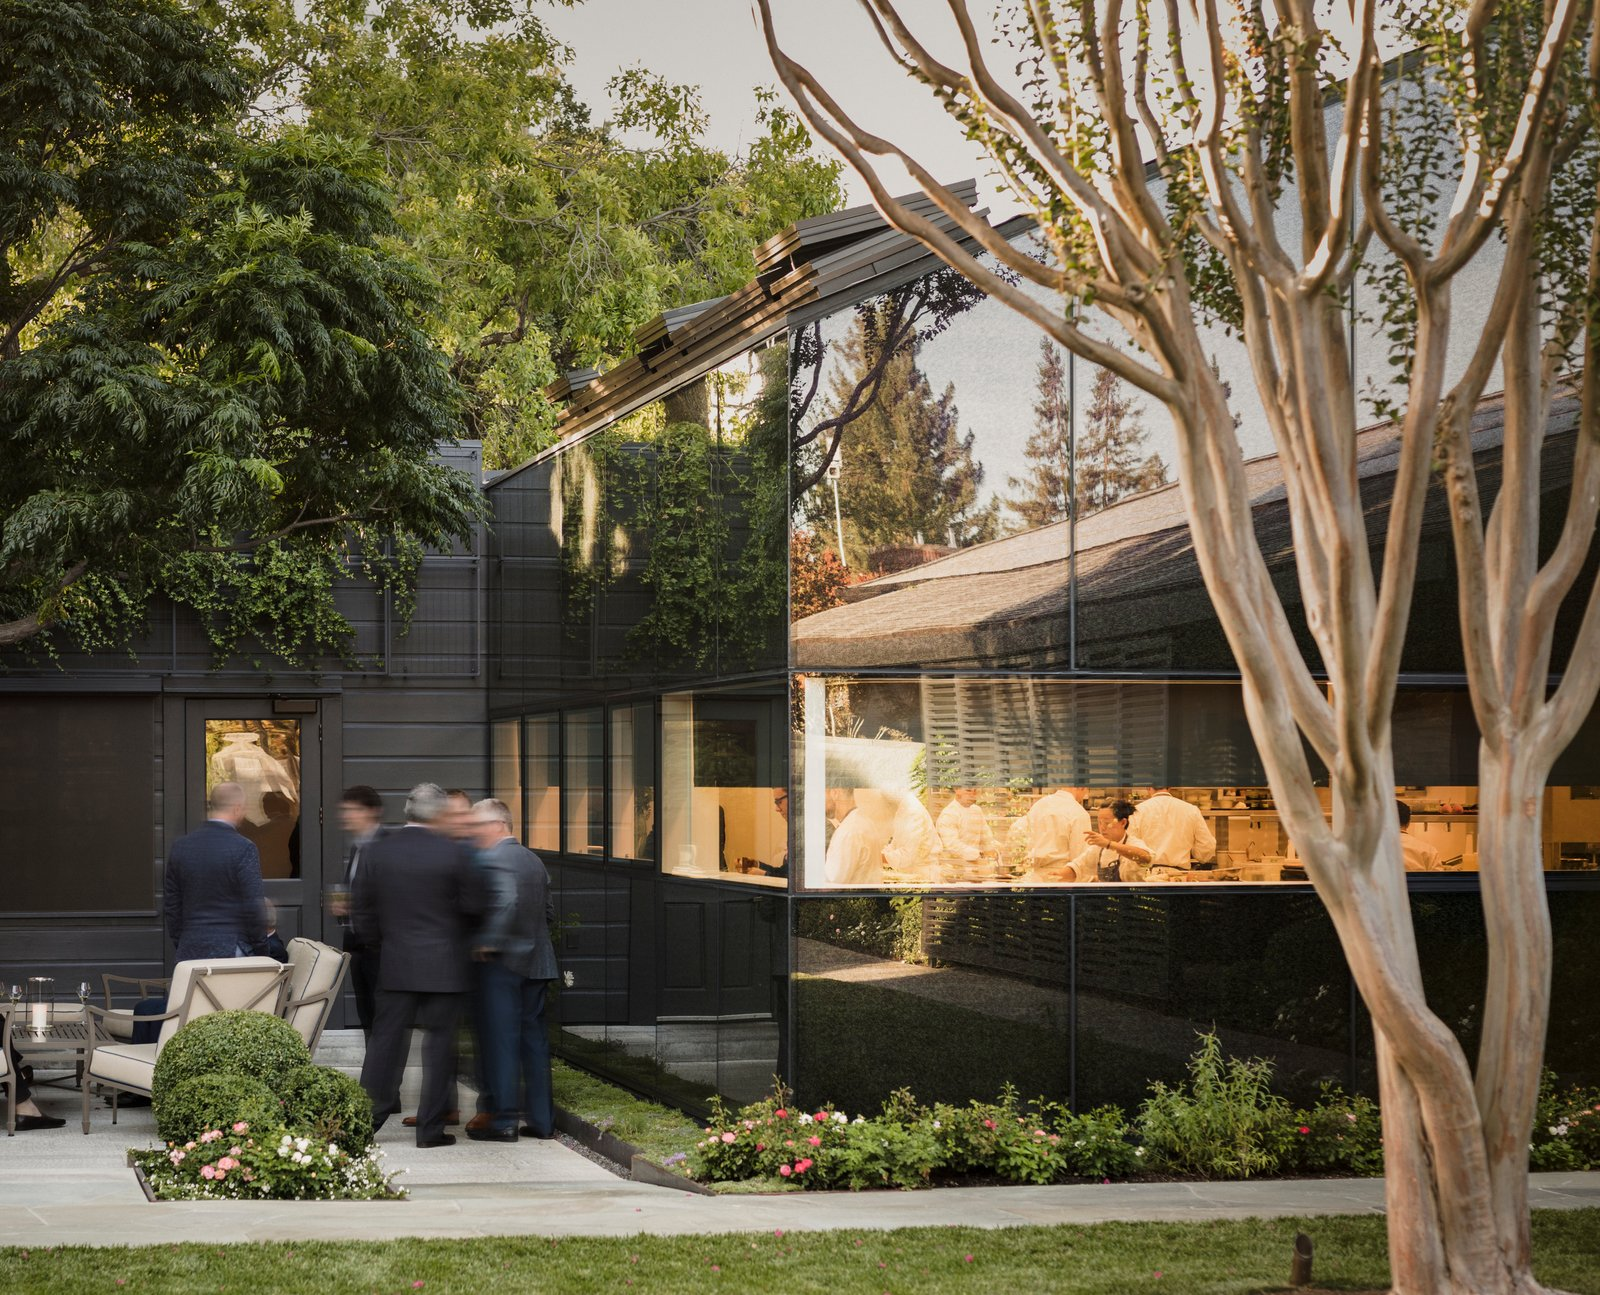 The pitched, low-slung roofs of the kitchen and annex allude to their utilitarian function. Tagged: Exterior, Wood Siding Material, Gable RoofLine, and Glass Siding Material.  Photo 5 of 12 in A Look Inside The French Laundry's Stunning $10M Renovation